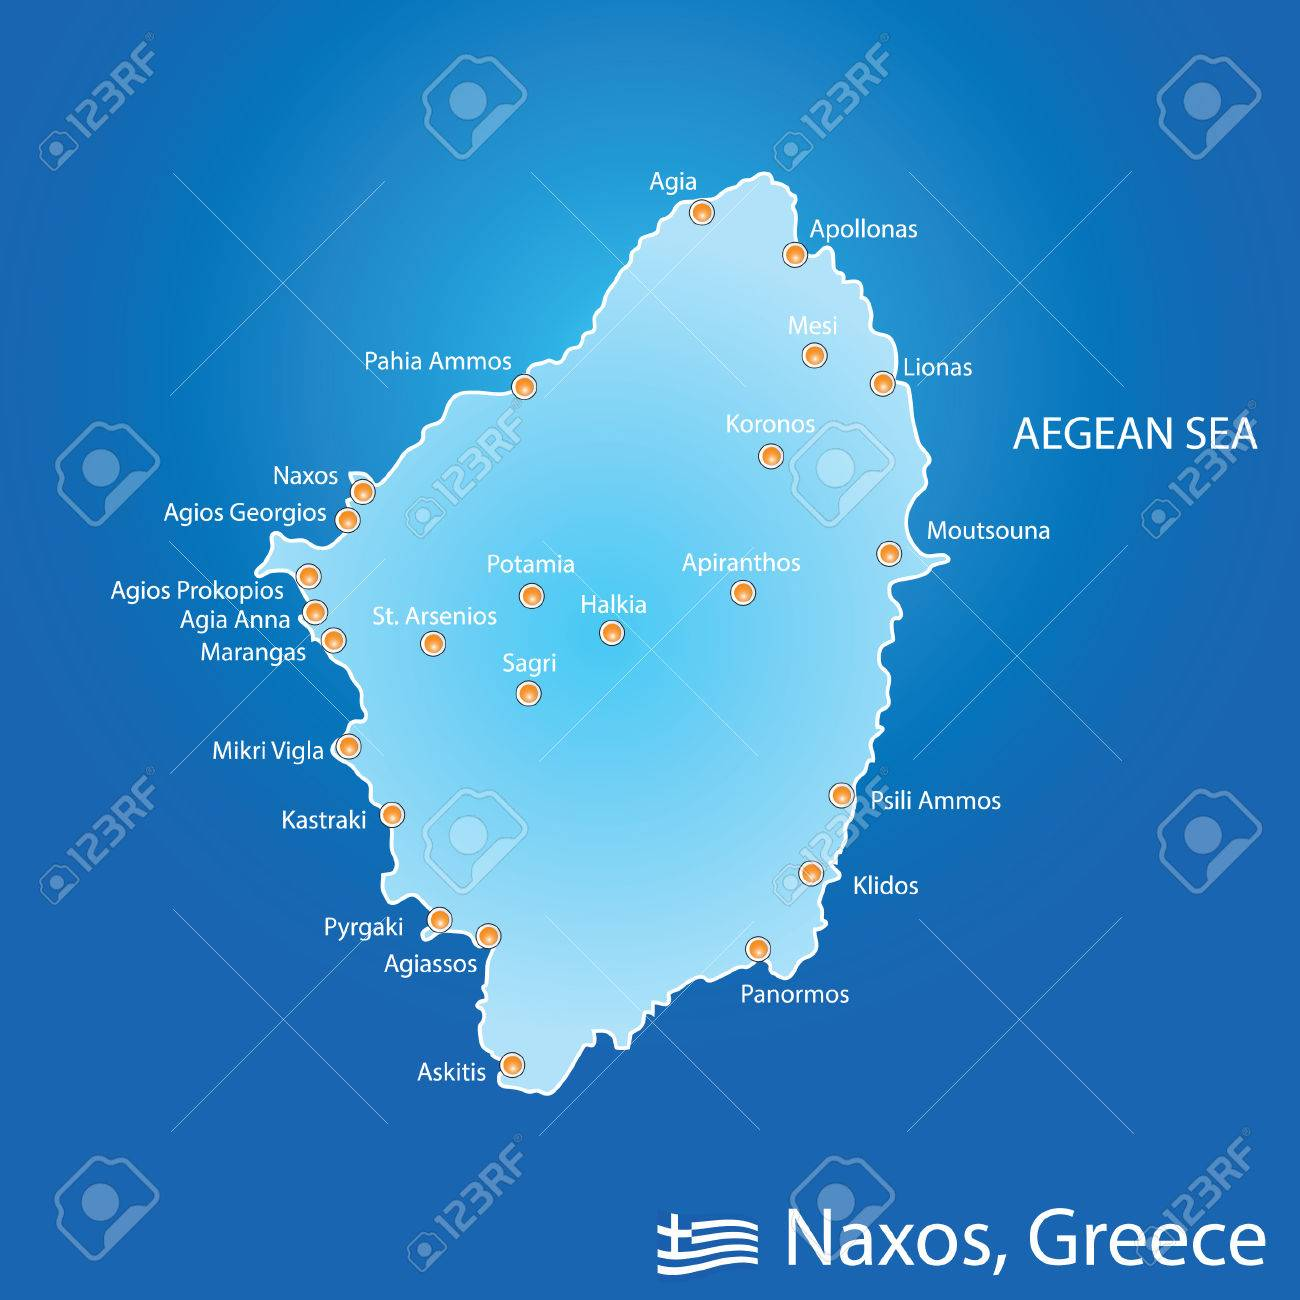 Islands Of Greece Map.Island Of Naxos In Greece Map Illustration Design In Colorful